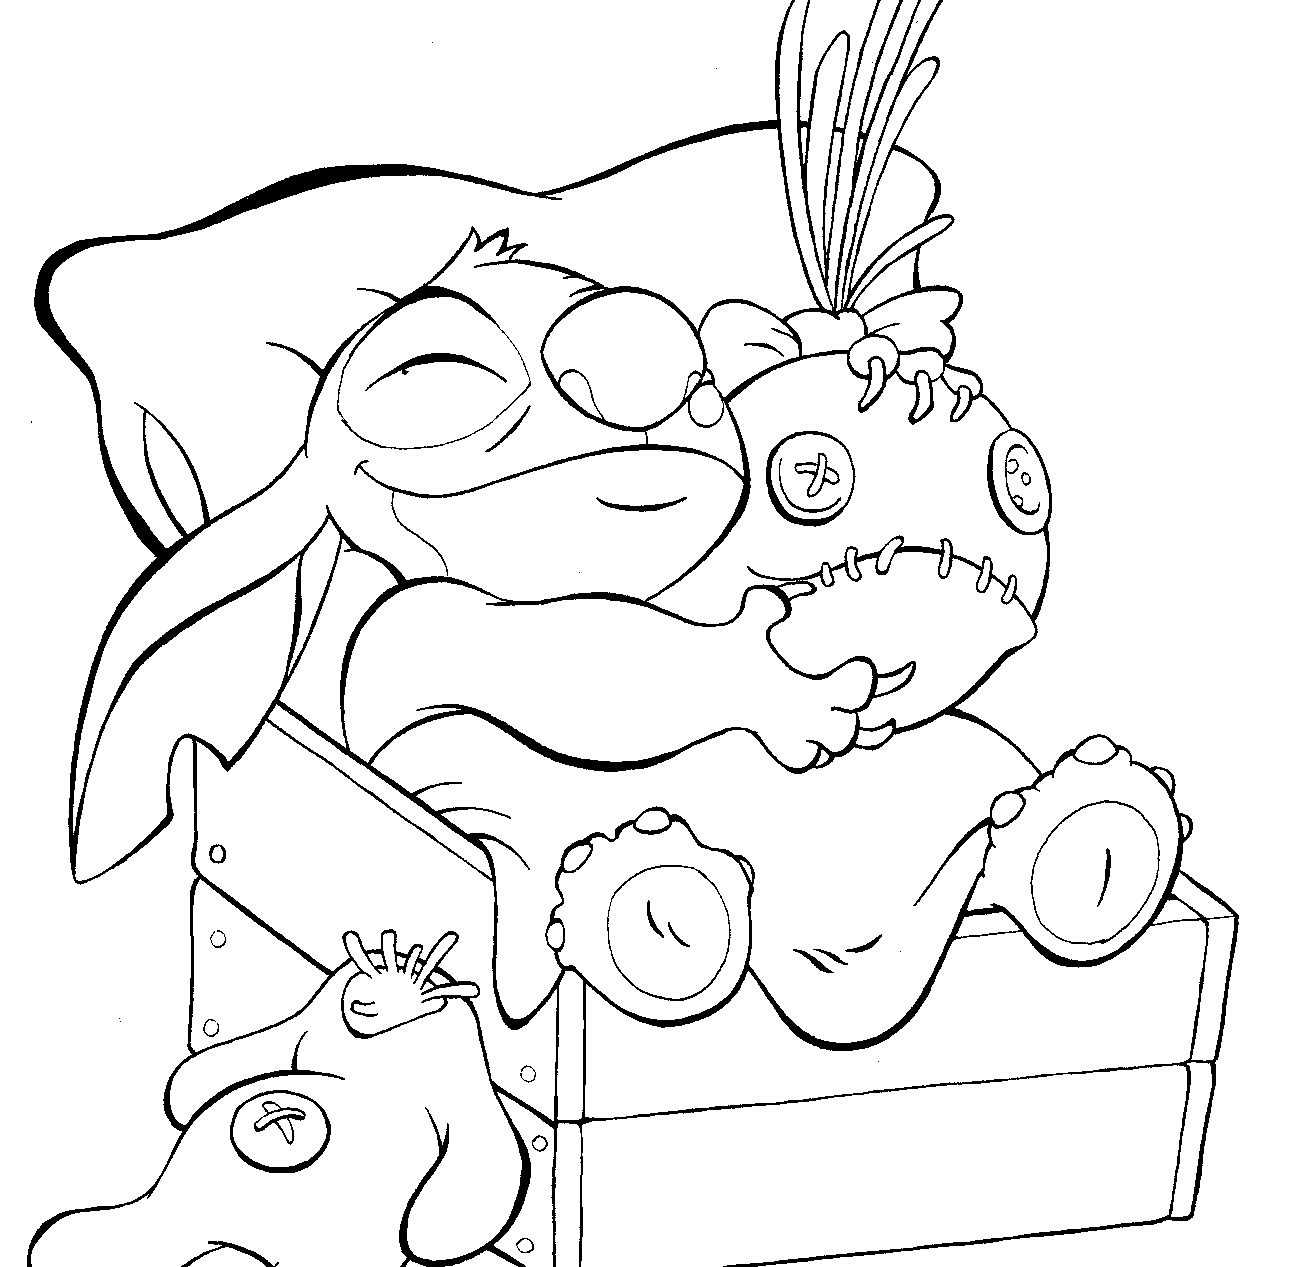 Free Printable Lilo And Stitch Coloring Pages For Kids Free Printable Colouring Pages For Toddlers